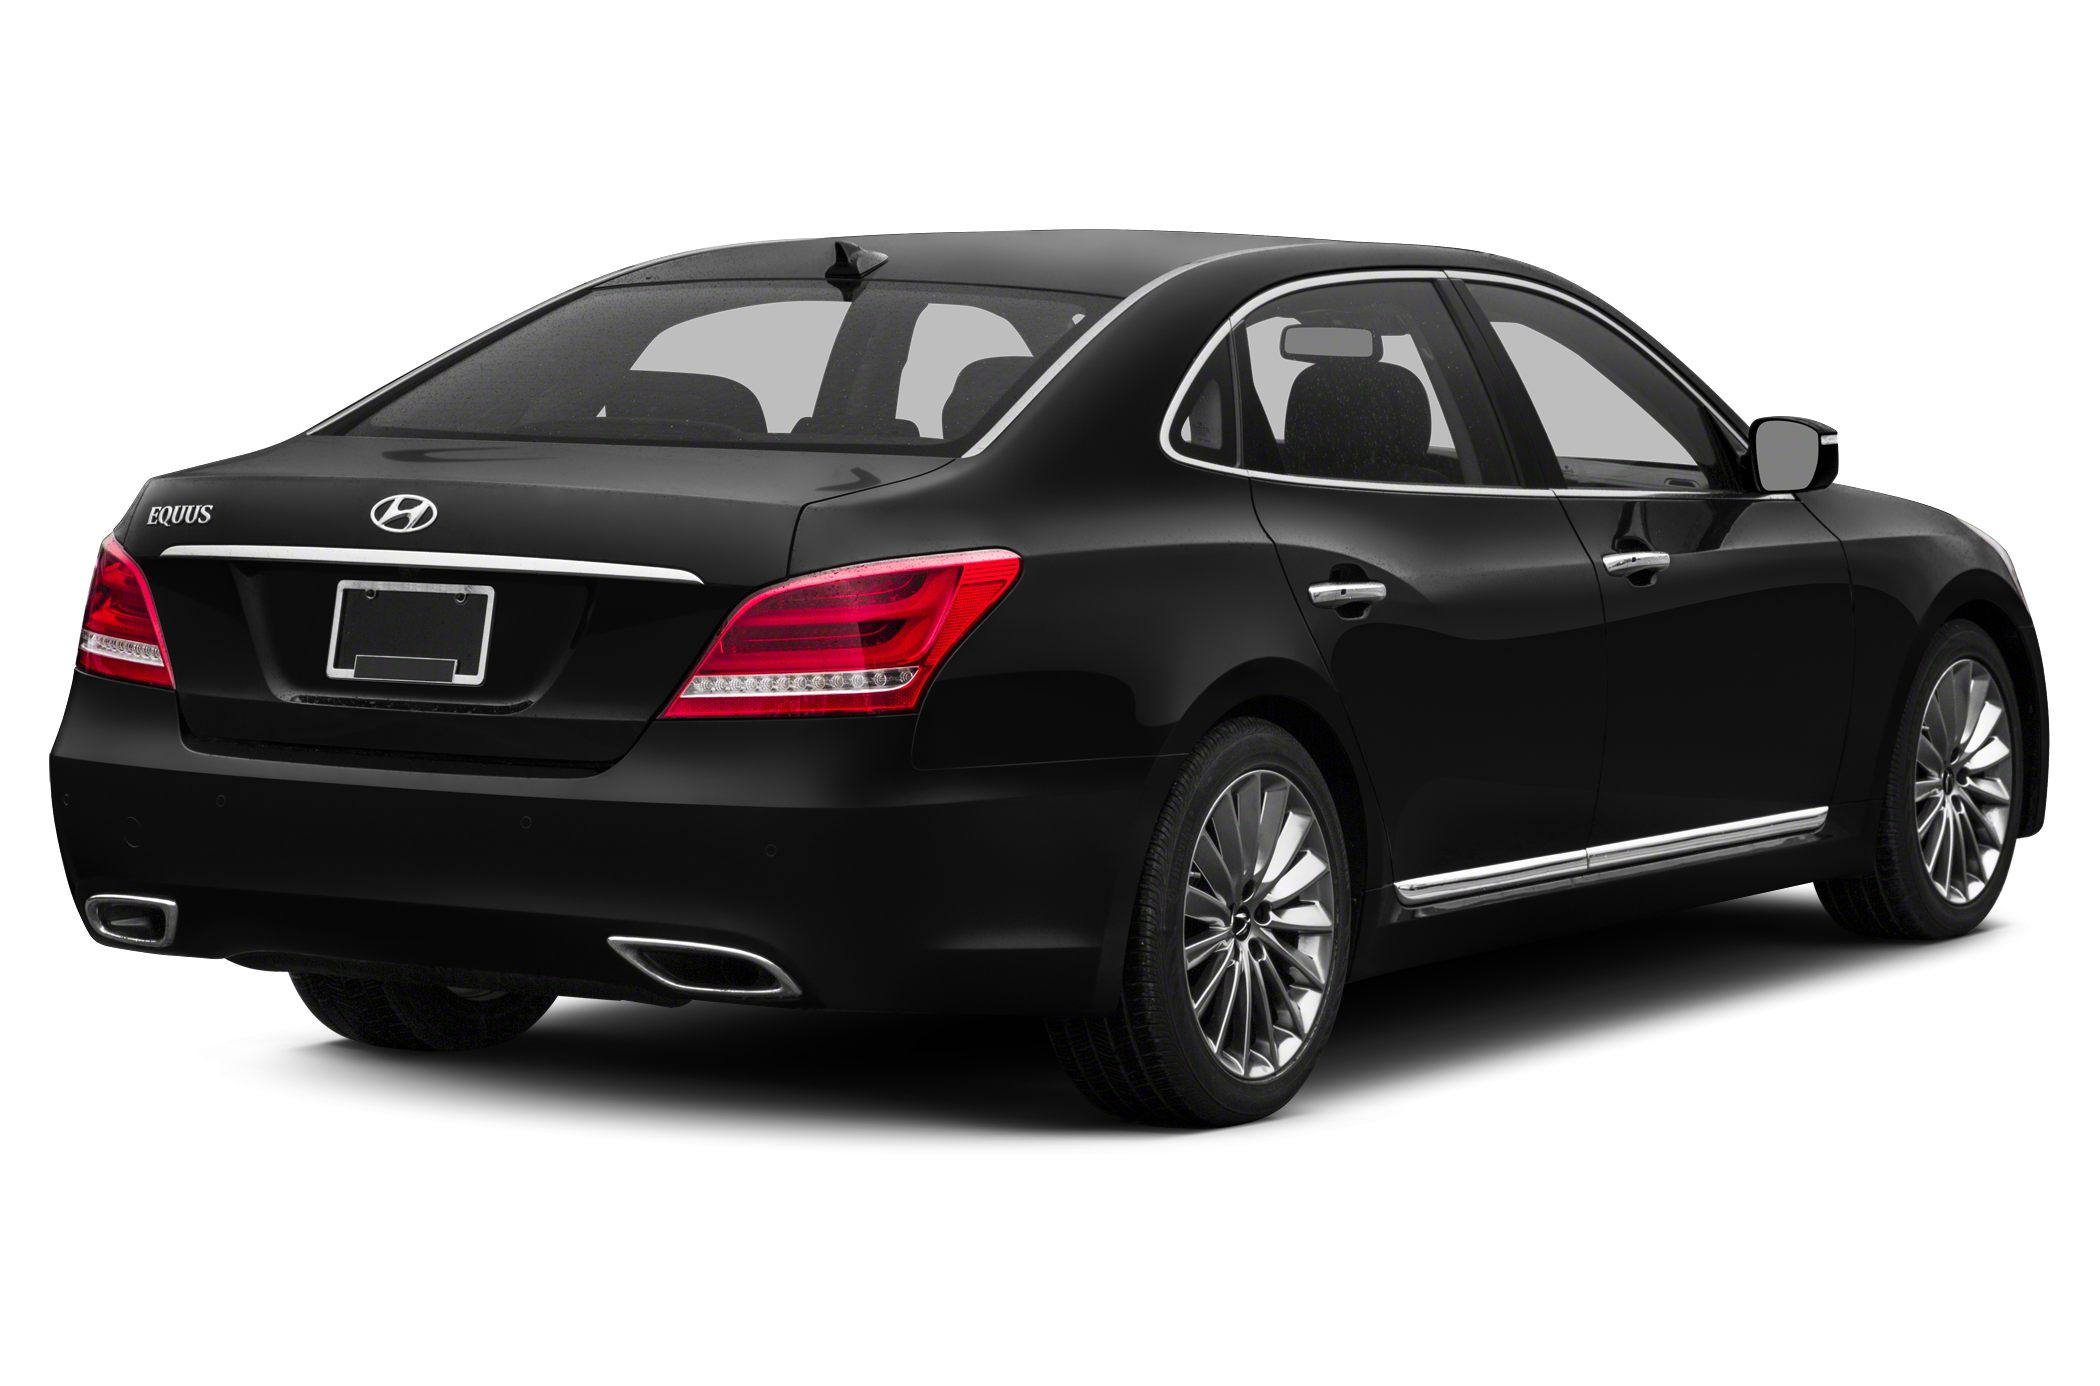 2016 Hyundai Equus Styles Amp Features Highlights